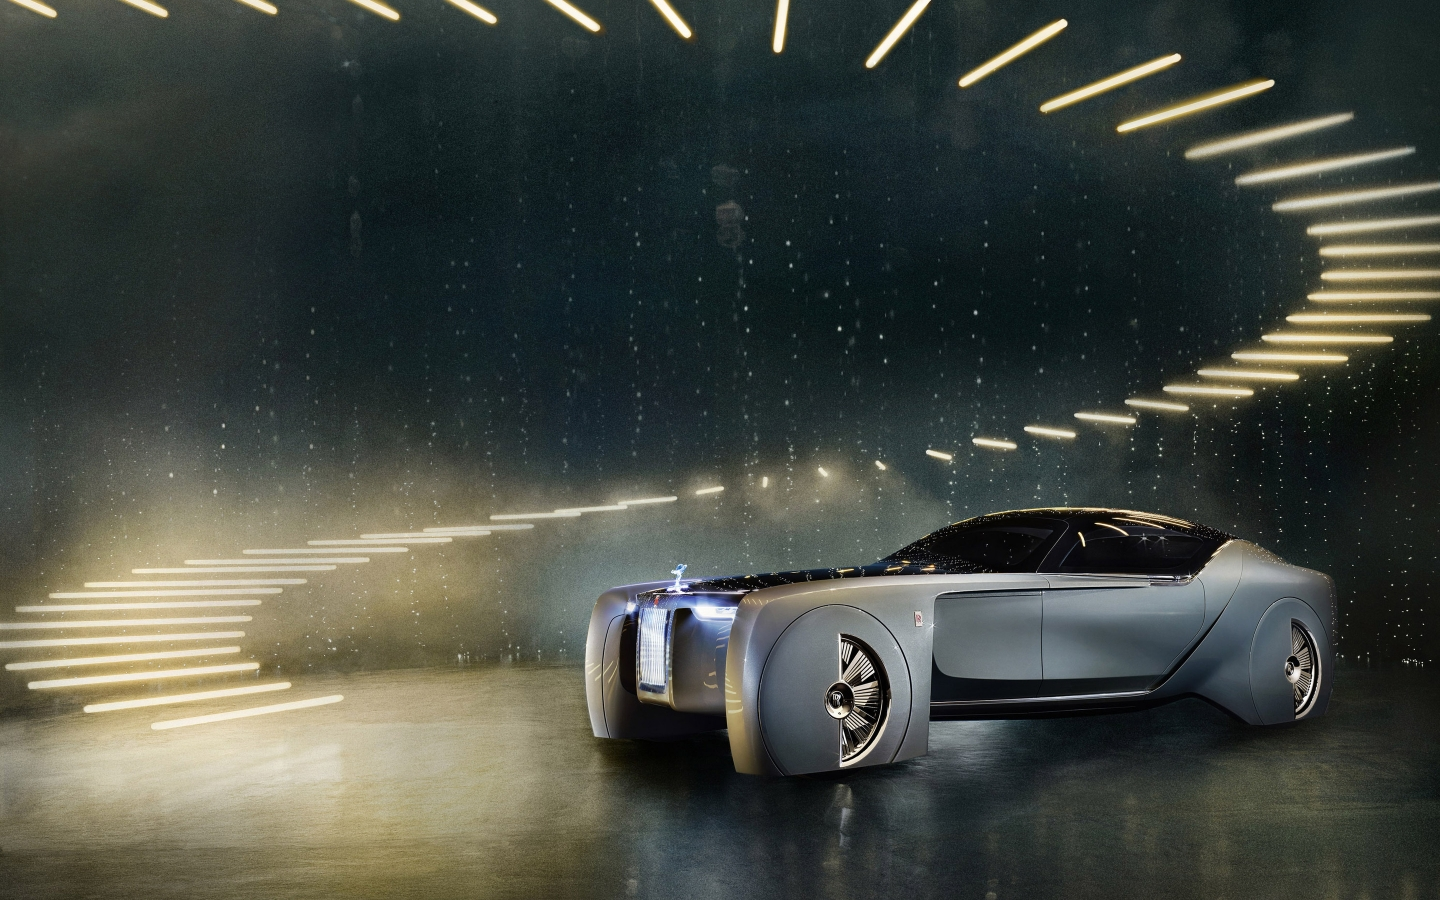 Rolls-Royce Concept Car 2016 for 1440 x 900 widescreen resolution